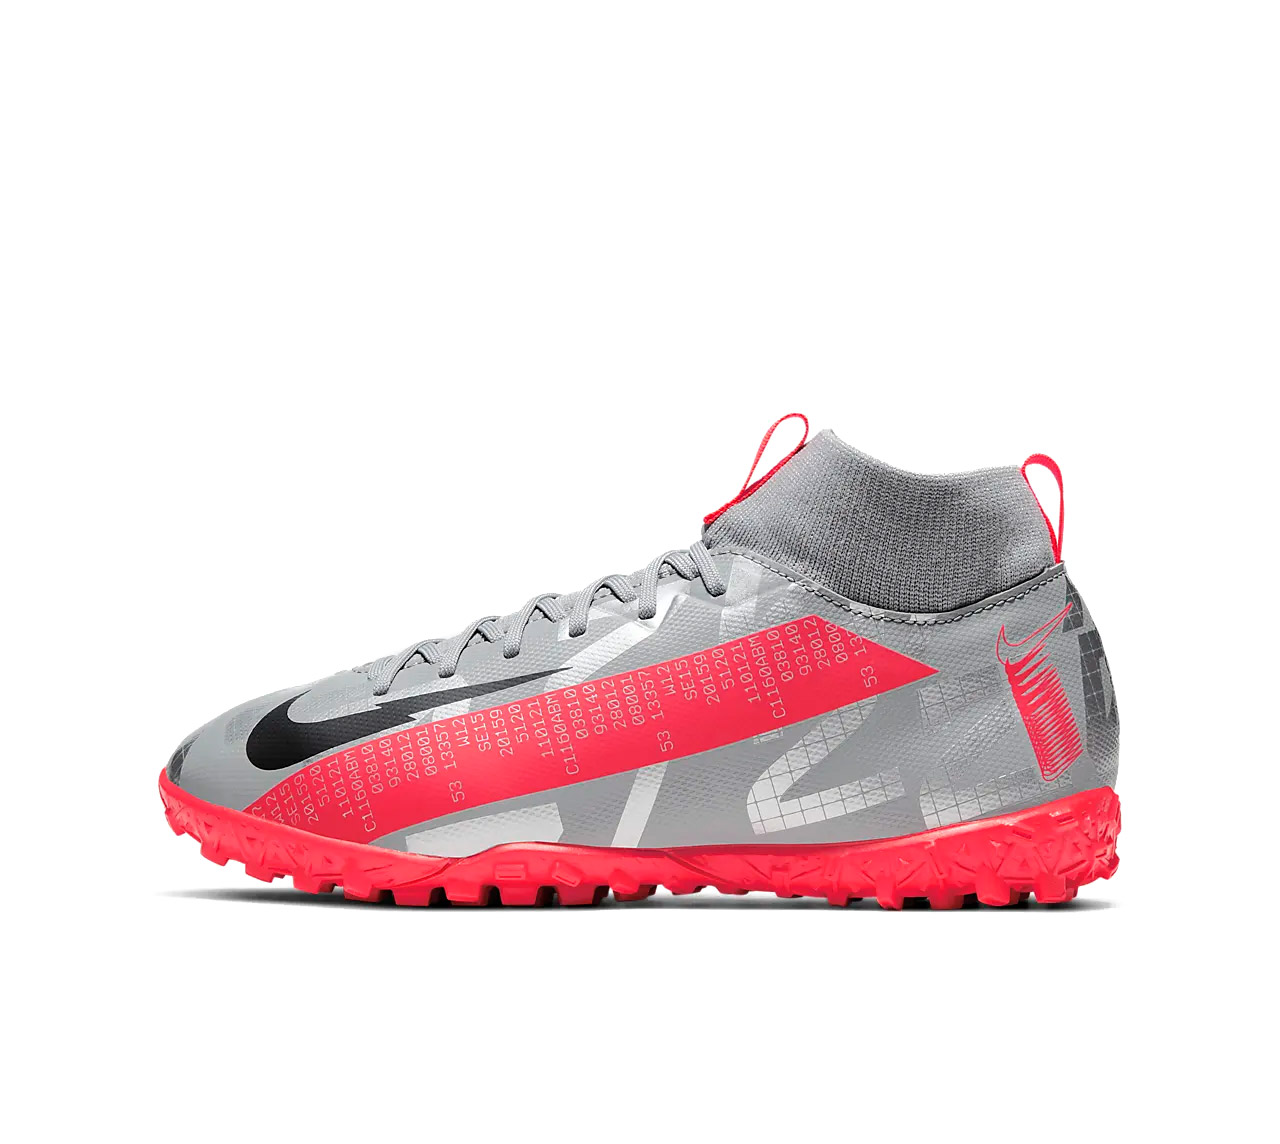 NIKE JR. MERCURIAL SUPERFLY 7 ACADEMY TF AT8143-906 Ασημί